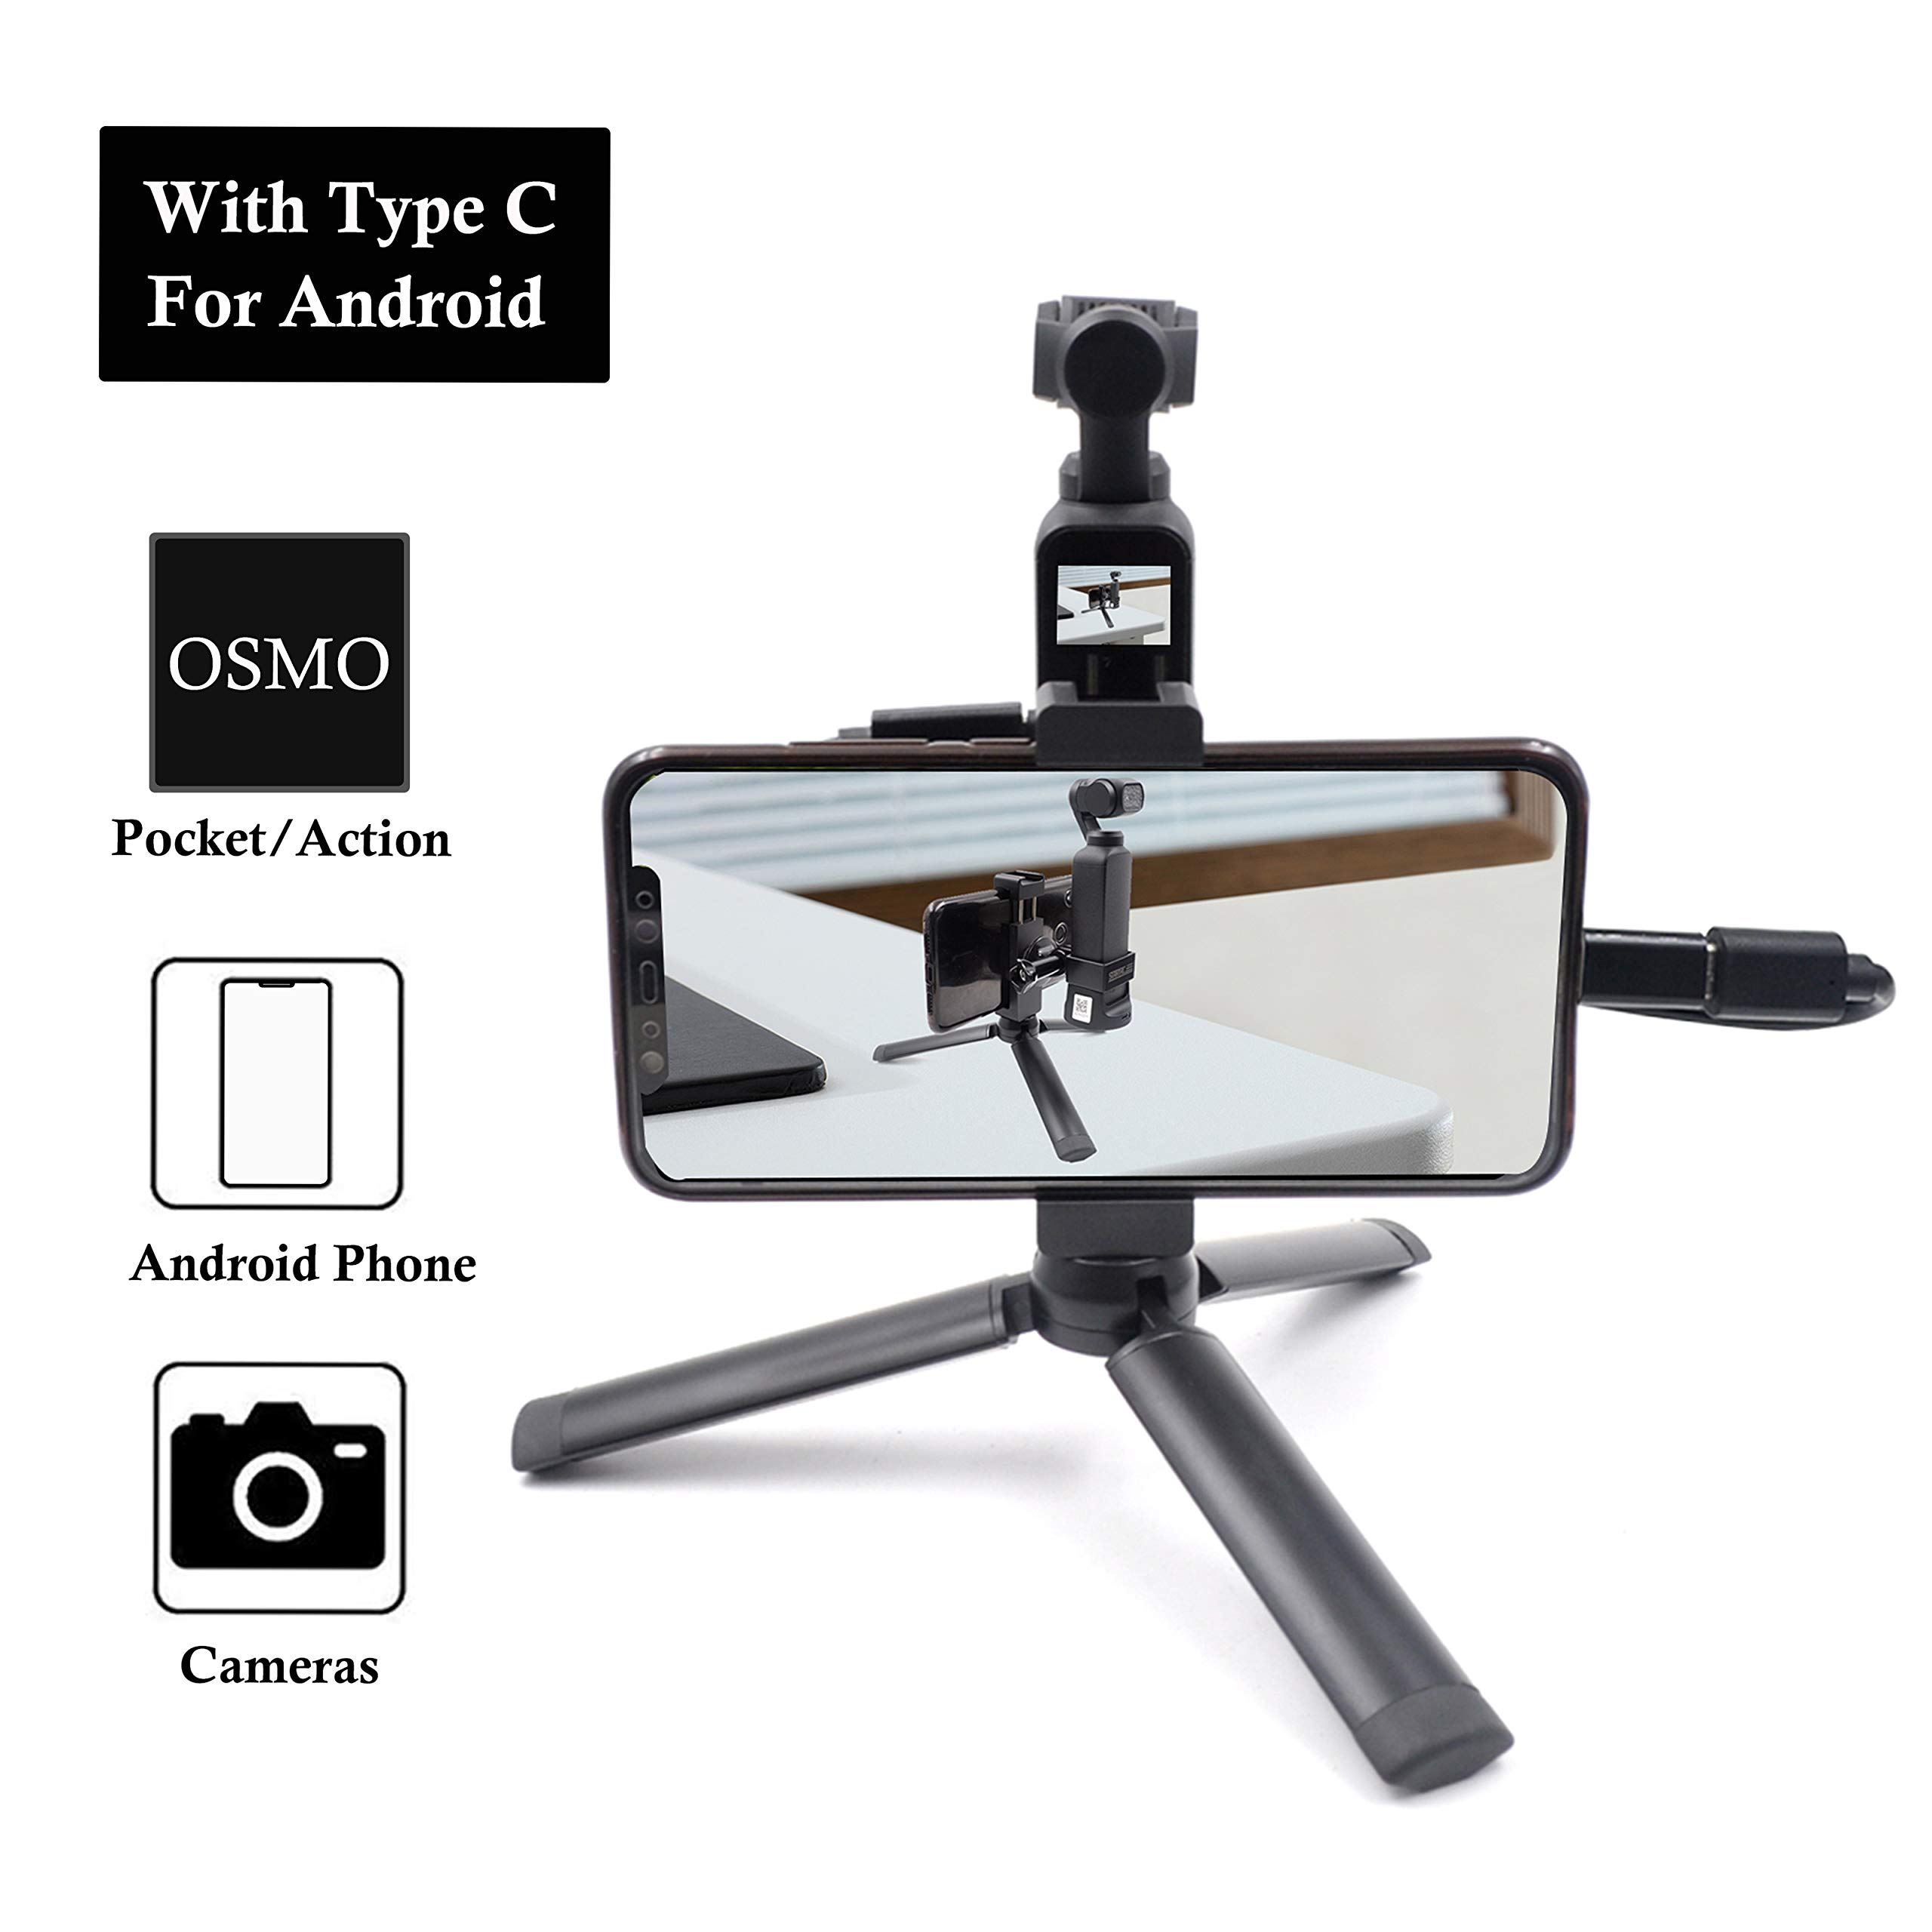 STARTRC OSMO Pocket Aluminum Handheld Mobile Phone Tripod Holder with Type C USB Cable + Micro Adapter for DJI OSMO Pocket Camera by STARTRC